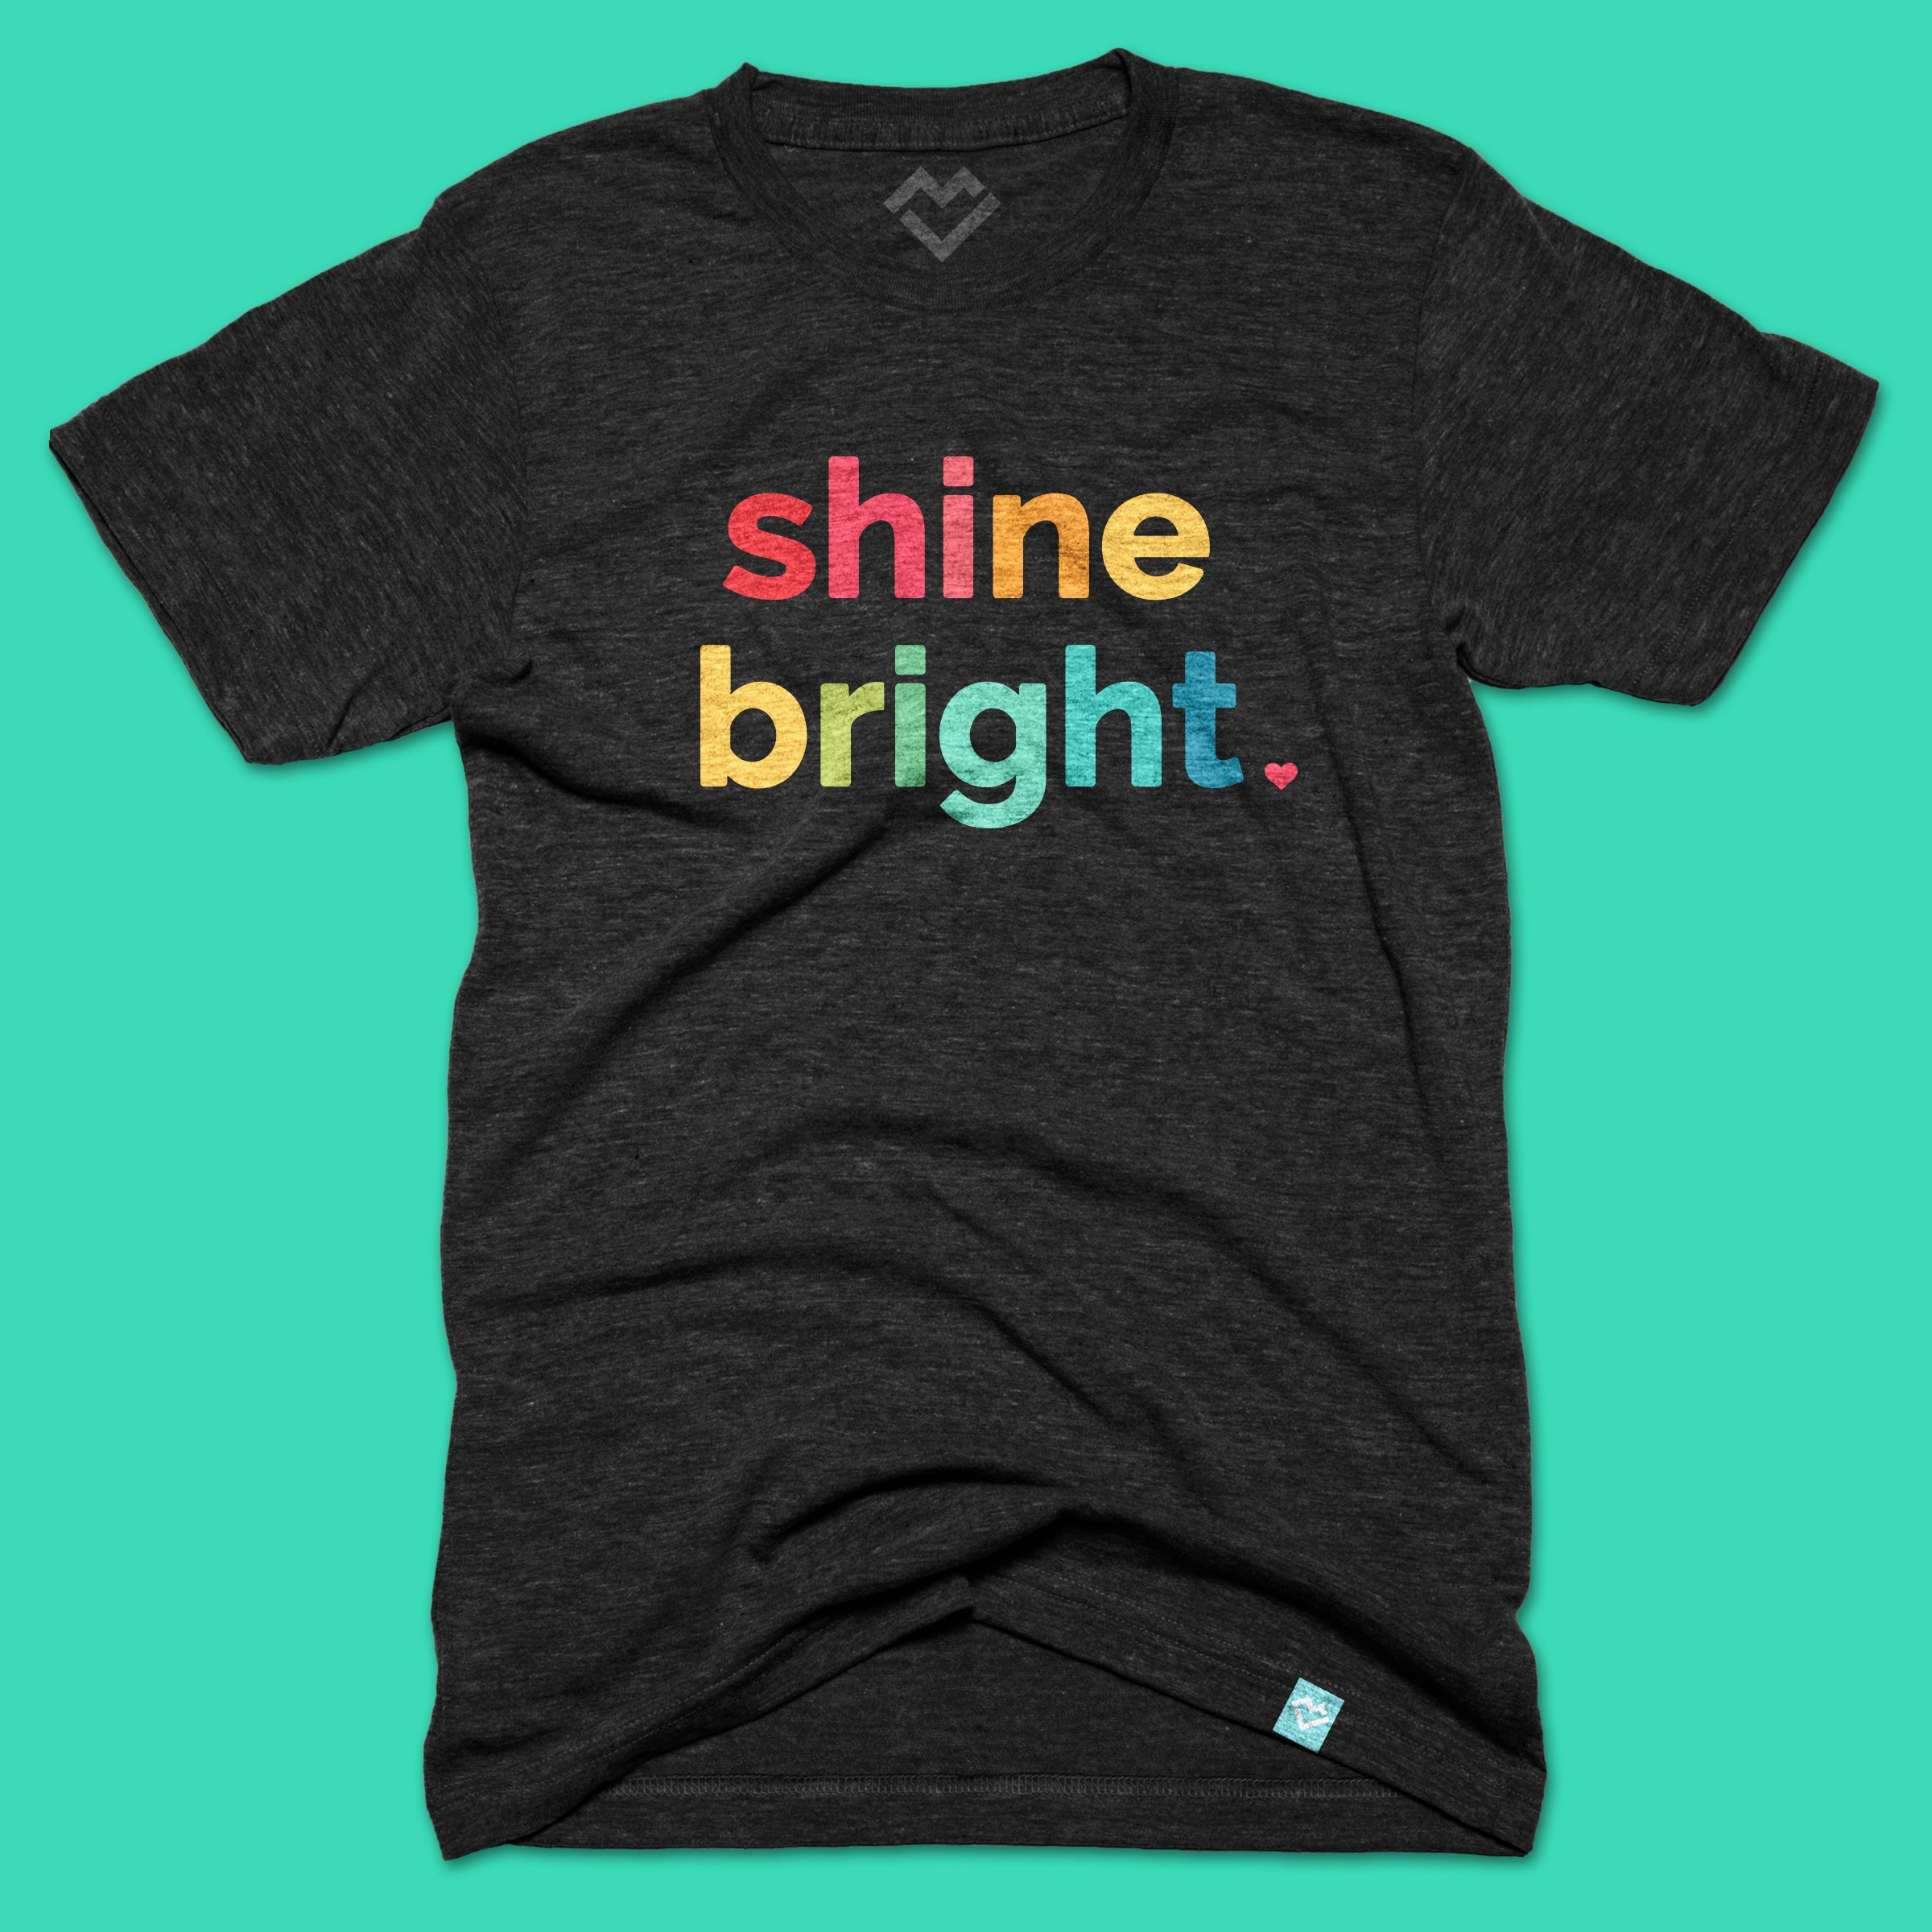 Shine Bright T-shirt (design by Just Add Sunshine) by Maker Valley